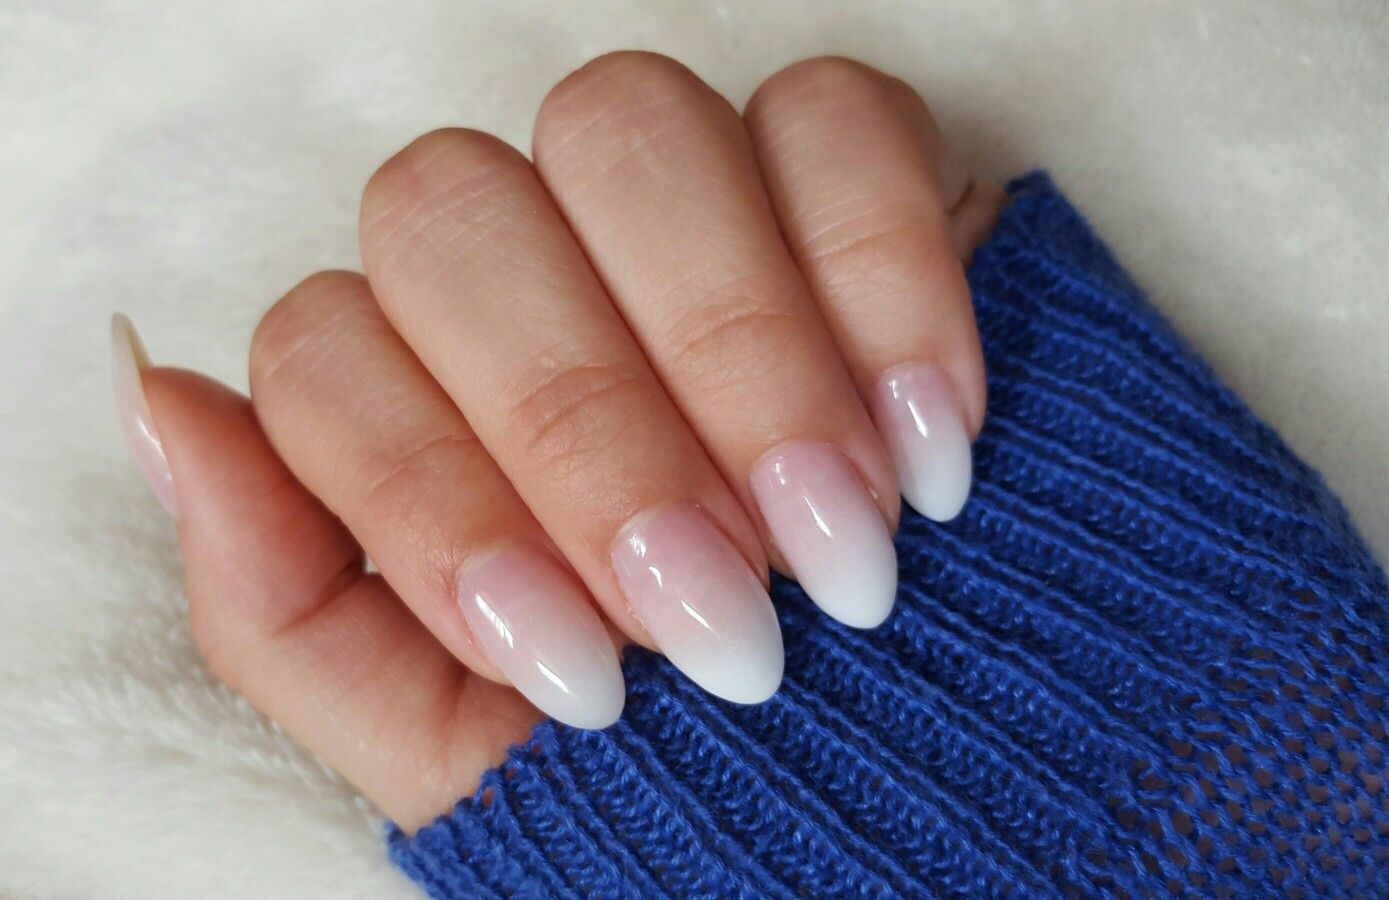 French Ombre On Almond Nail Shape With Images Ombre Acrylic